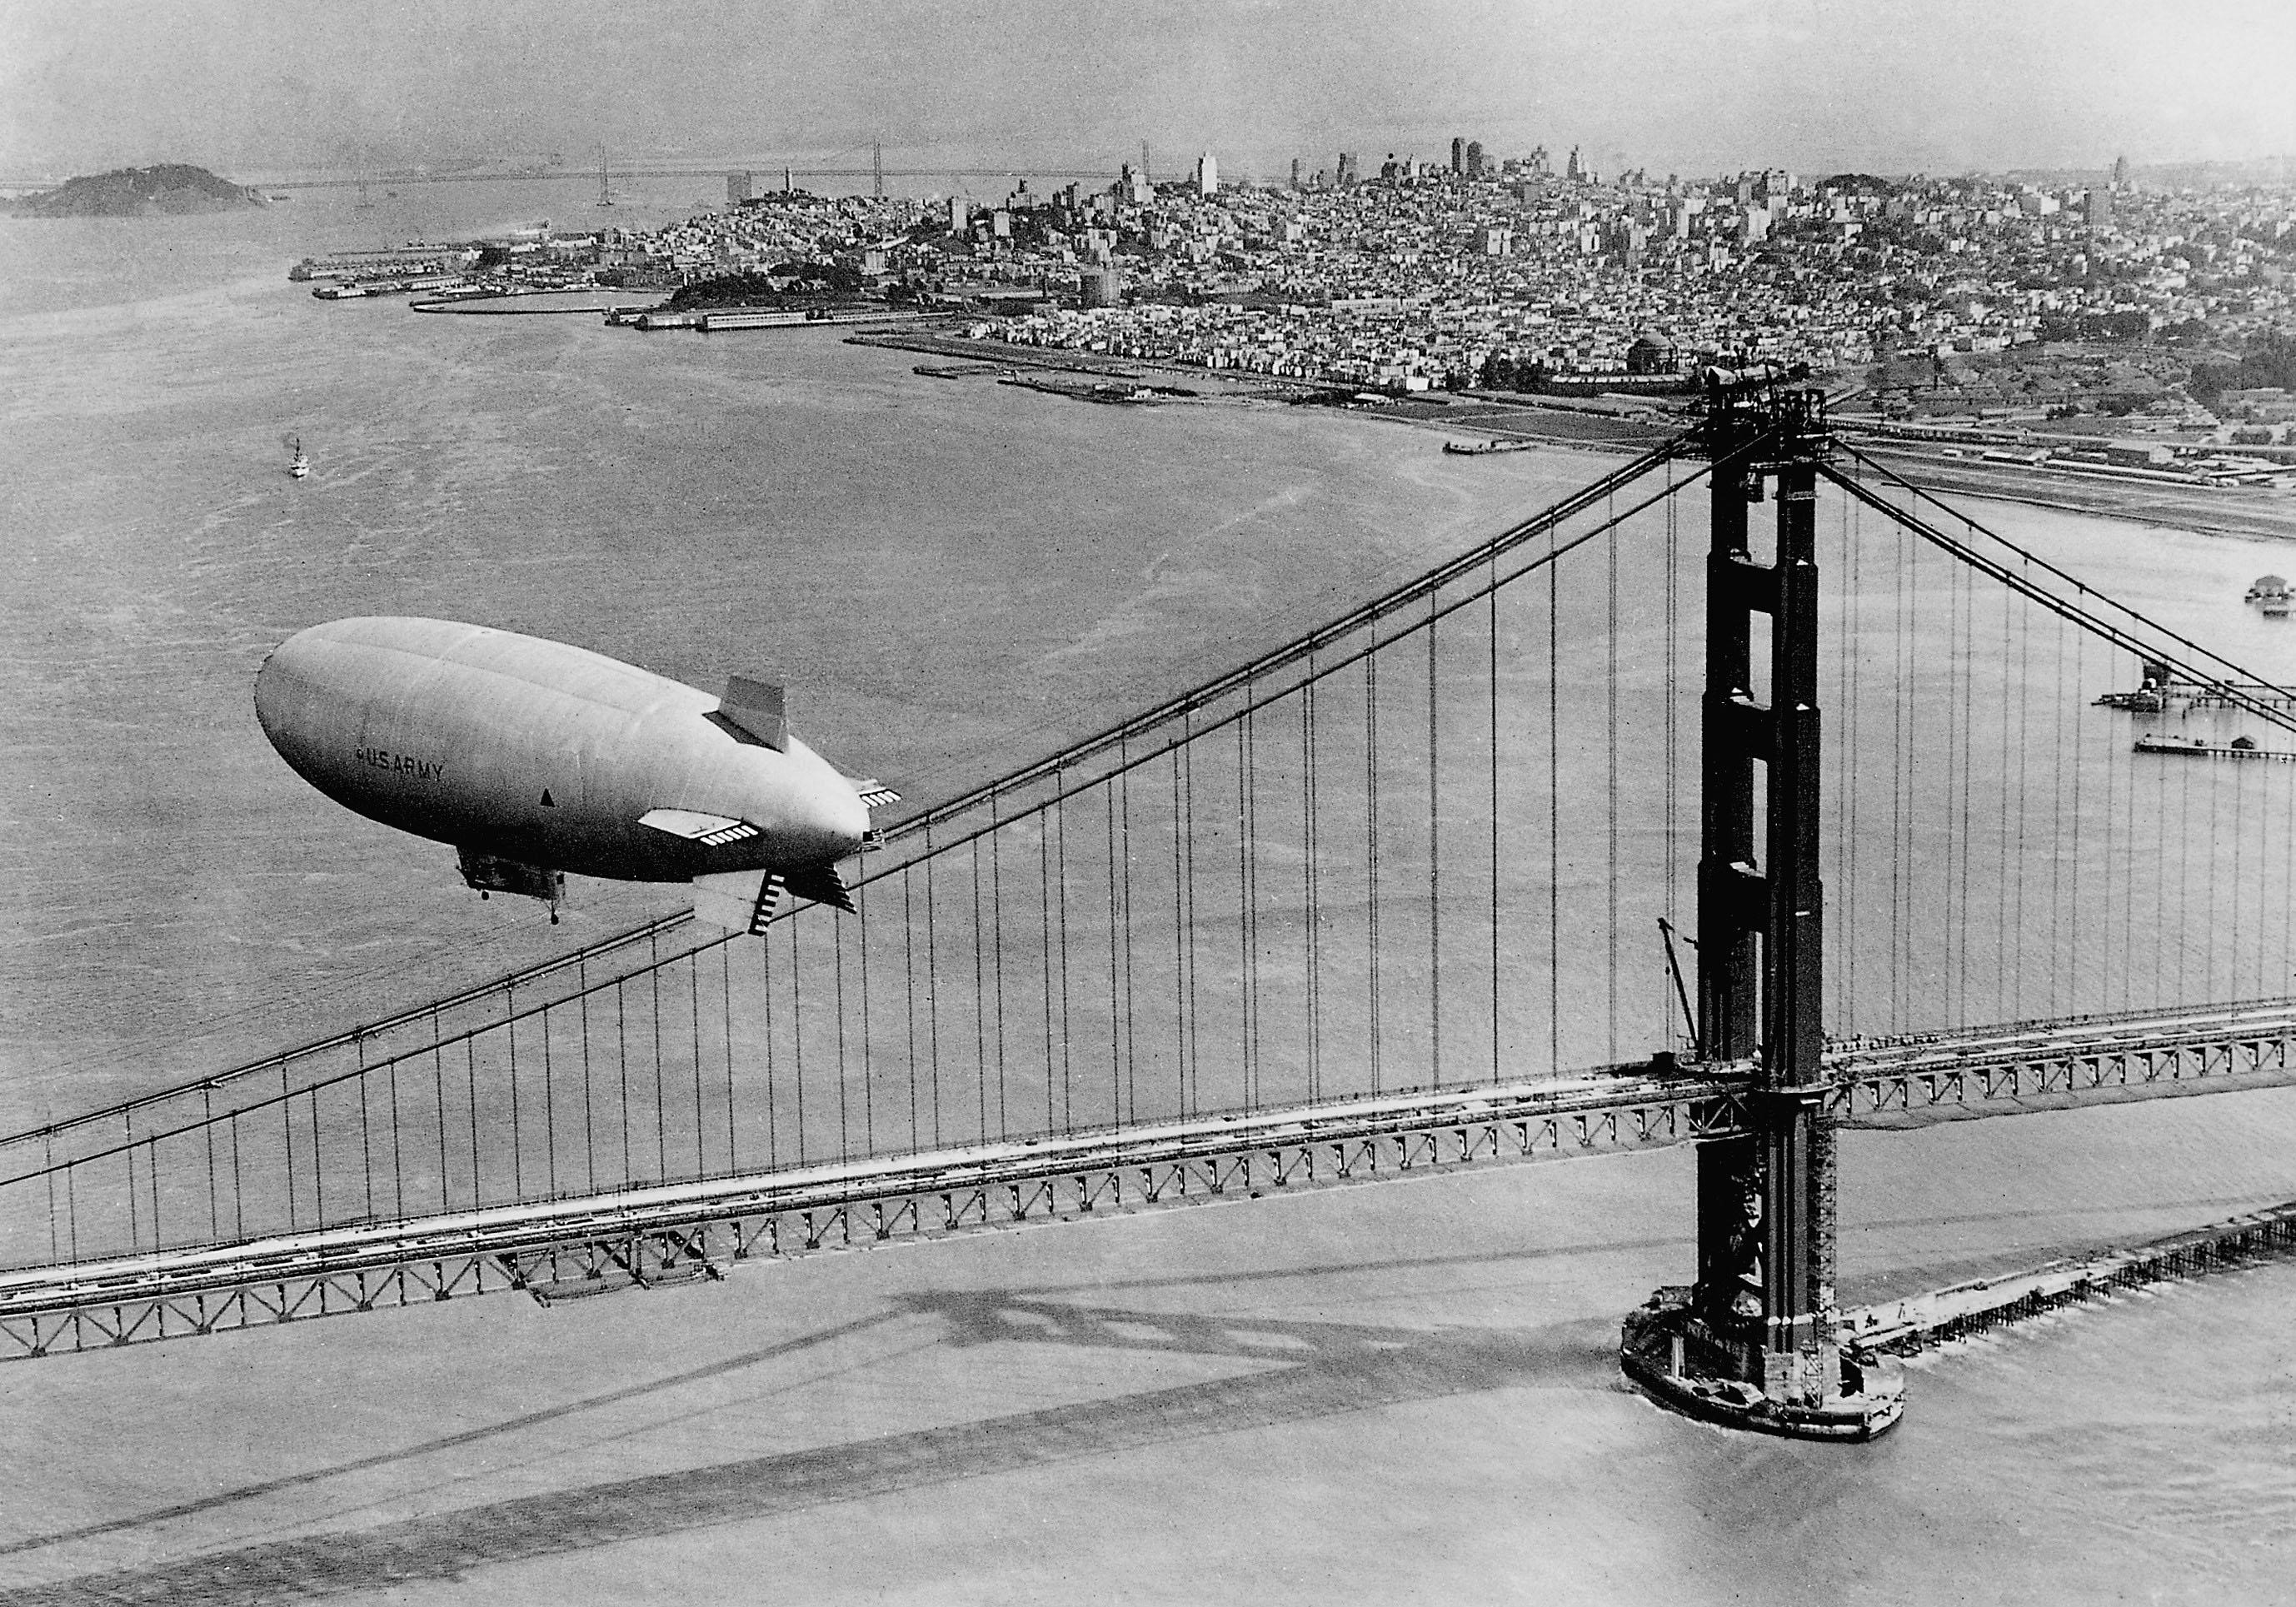 CPJ63A Airship over the Golden Gate Bridge in San Francisco, 1937